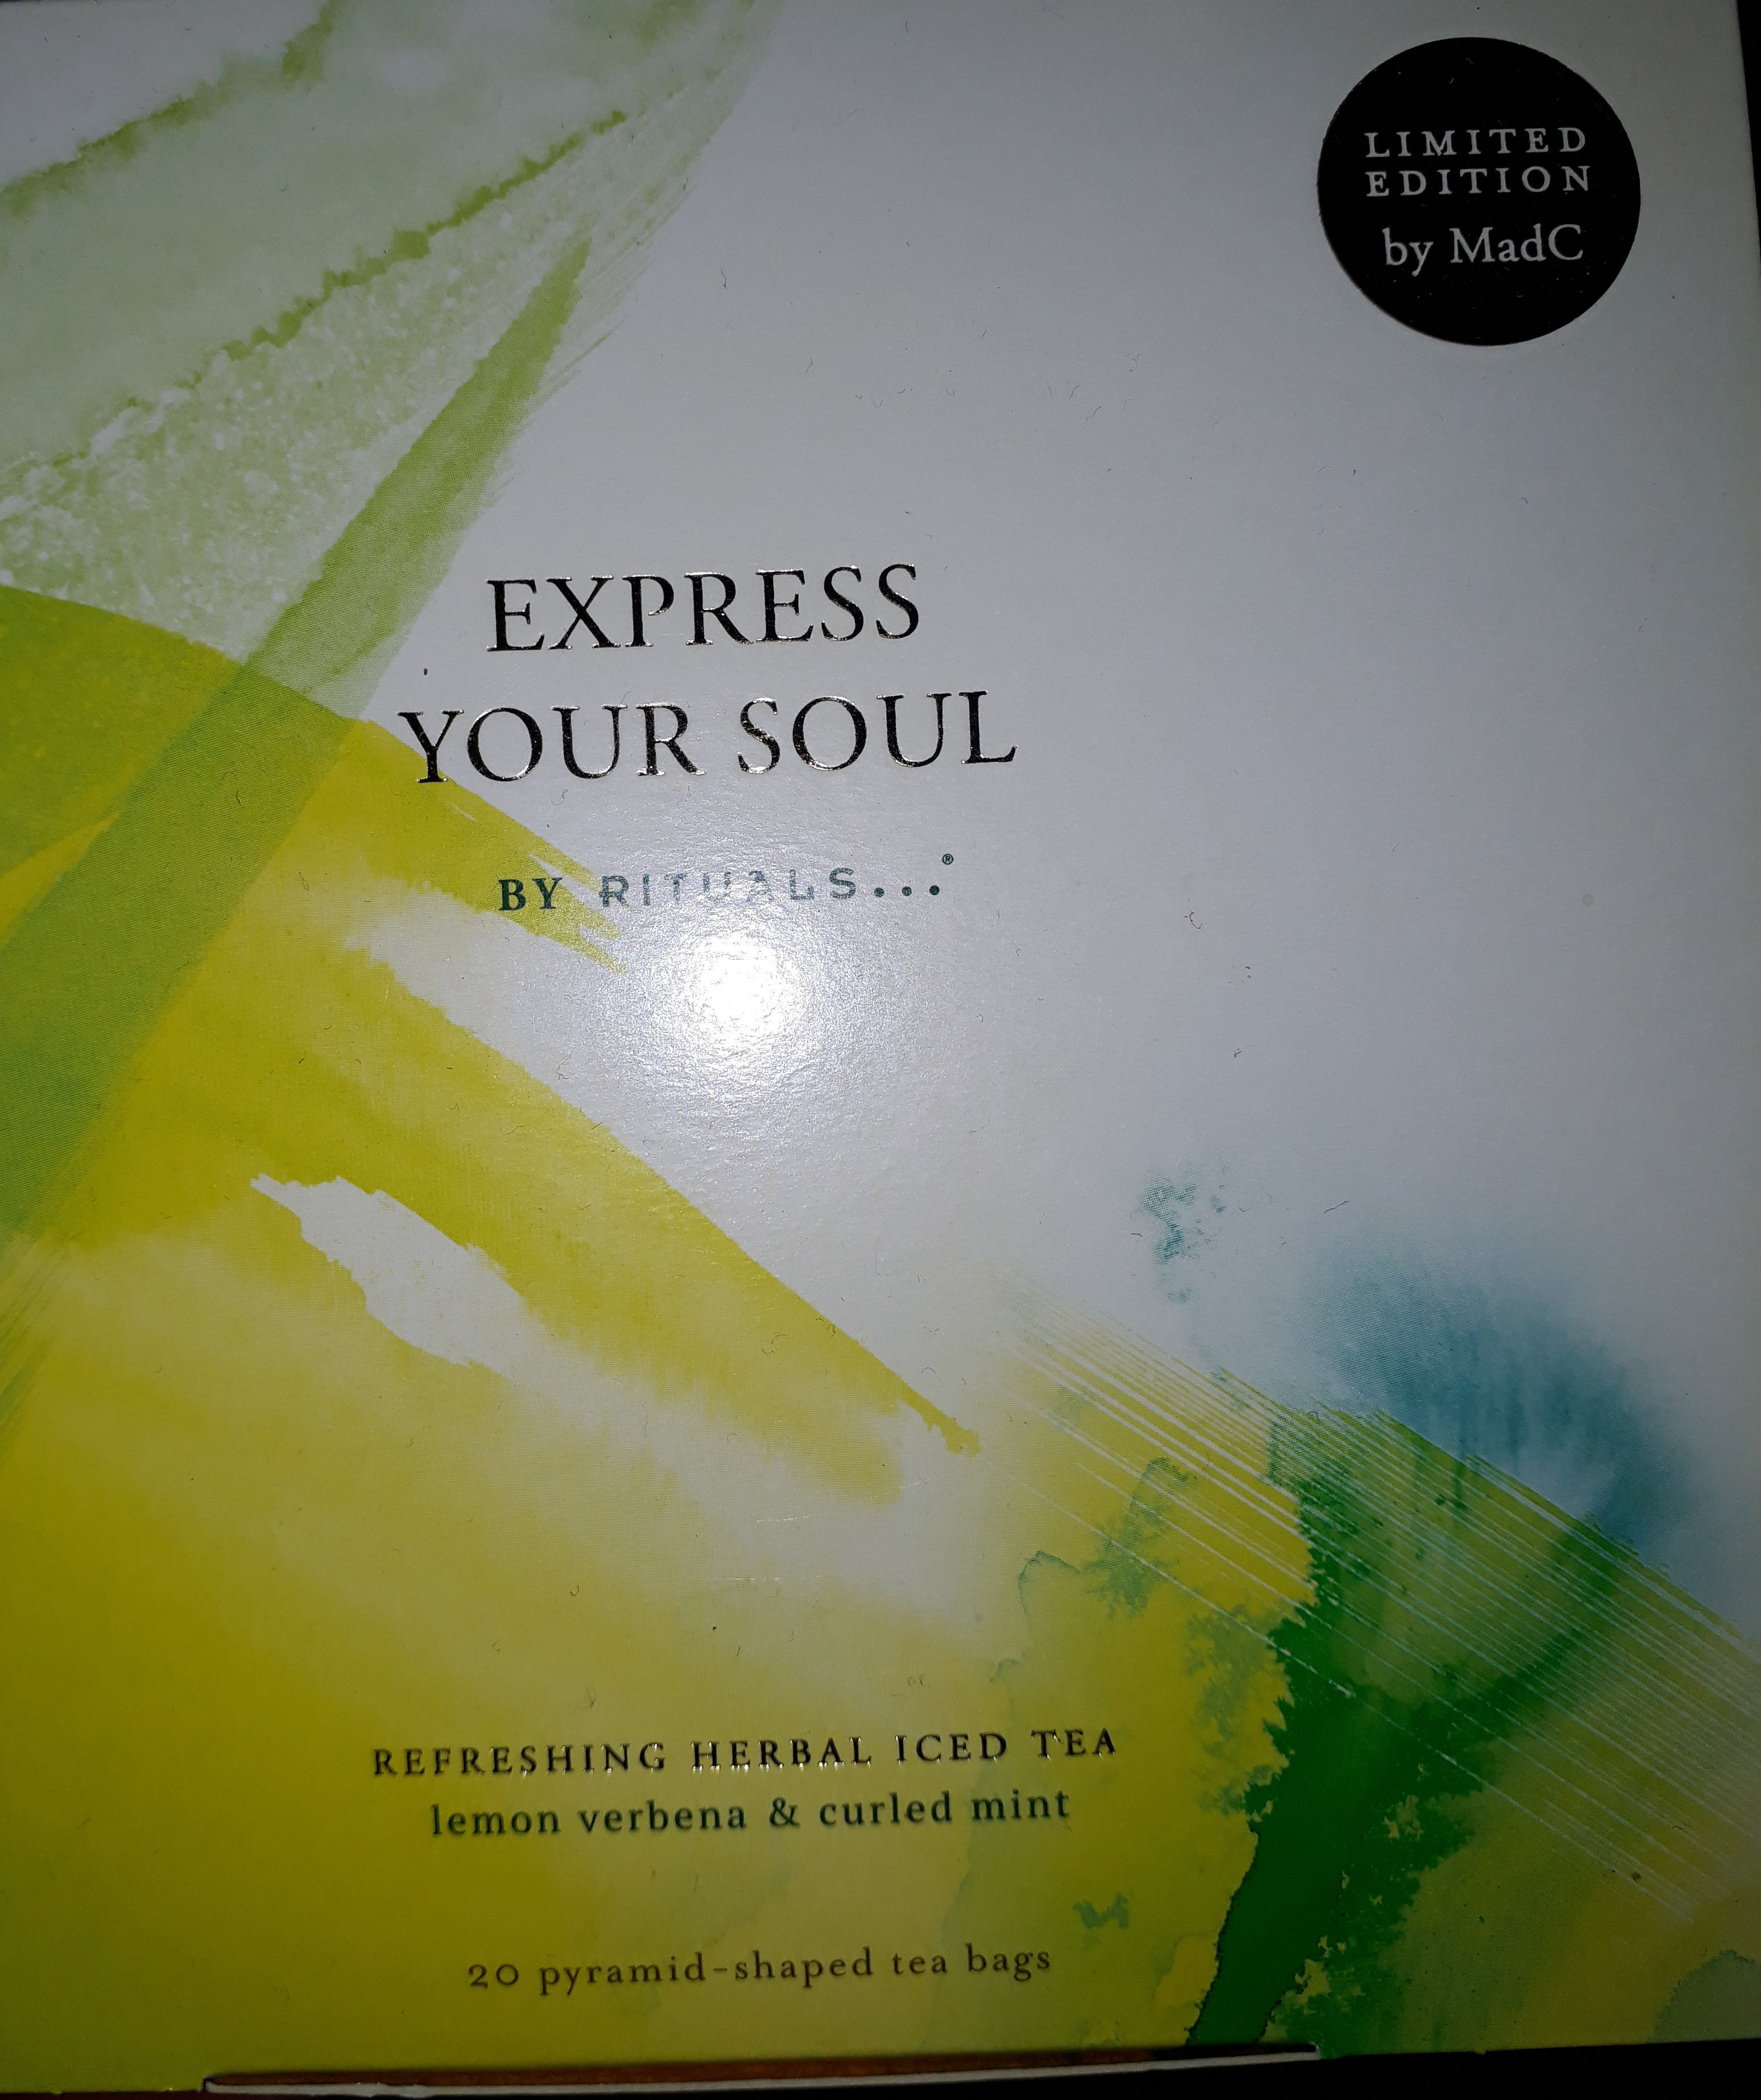 Express your soul - Product